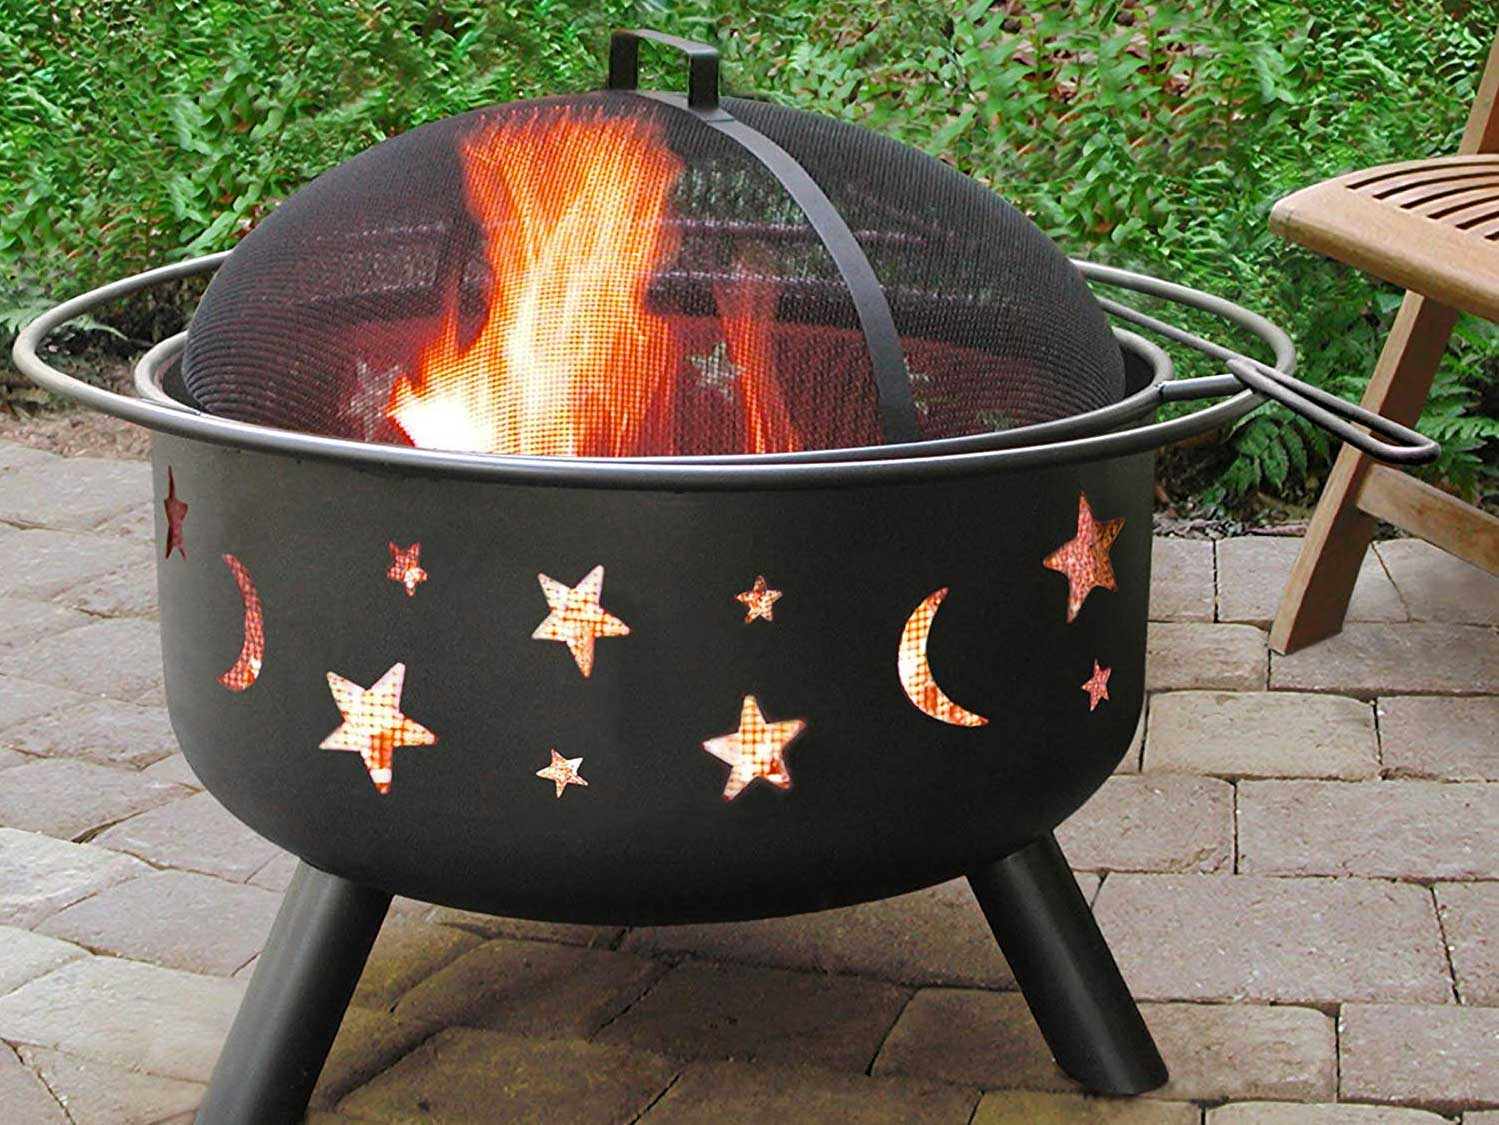 Three Great Options for Backyard Fire Pits